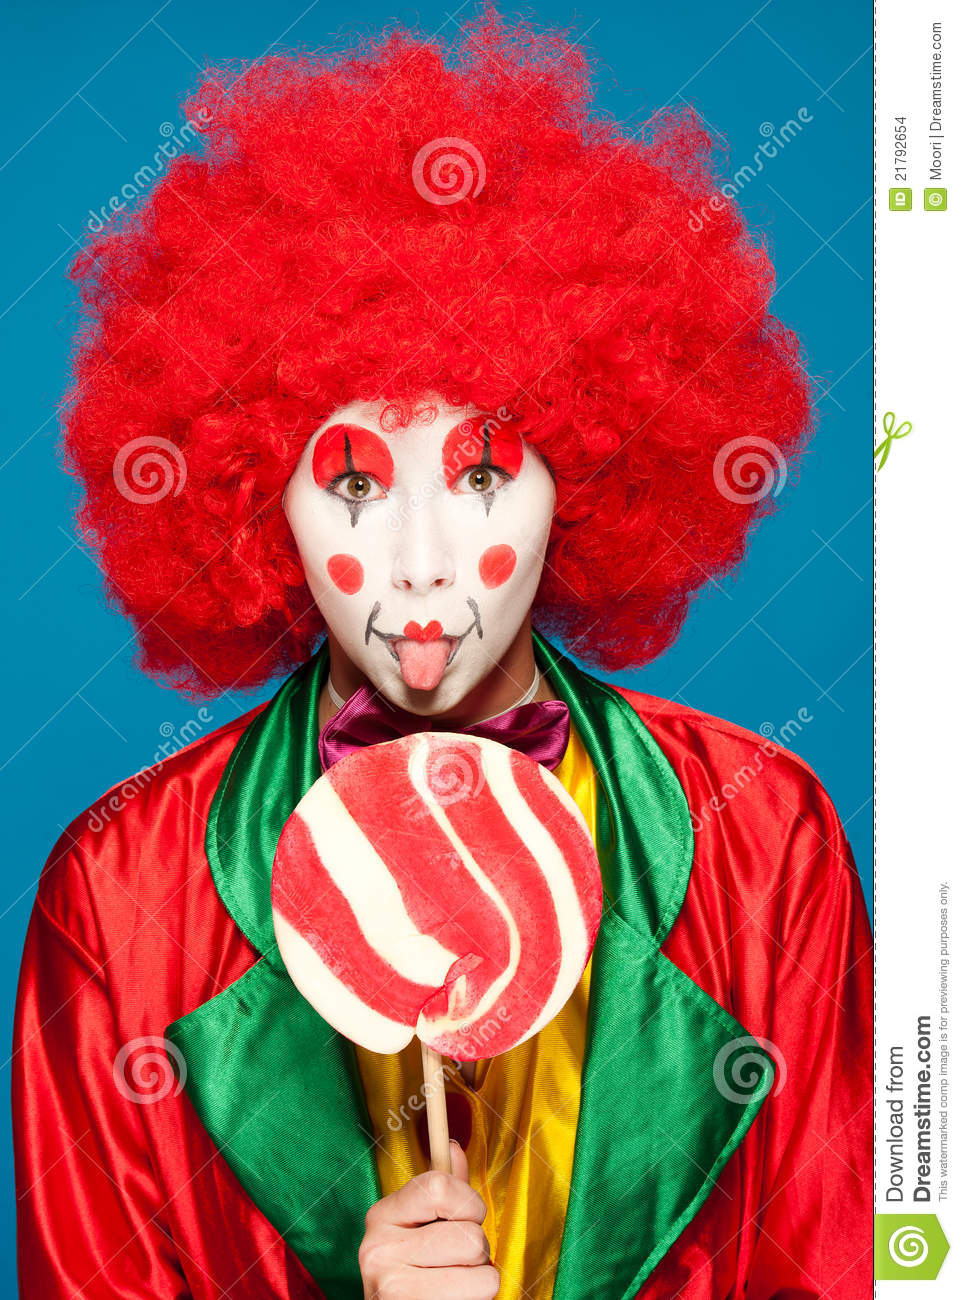 Bunter Clown